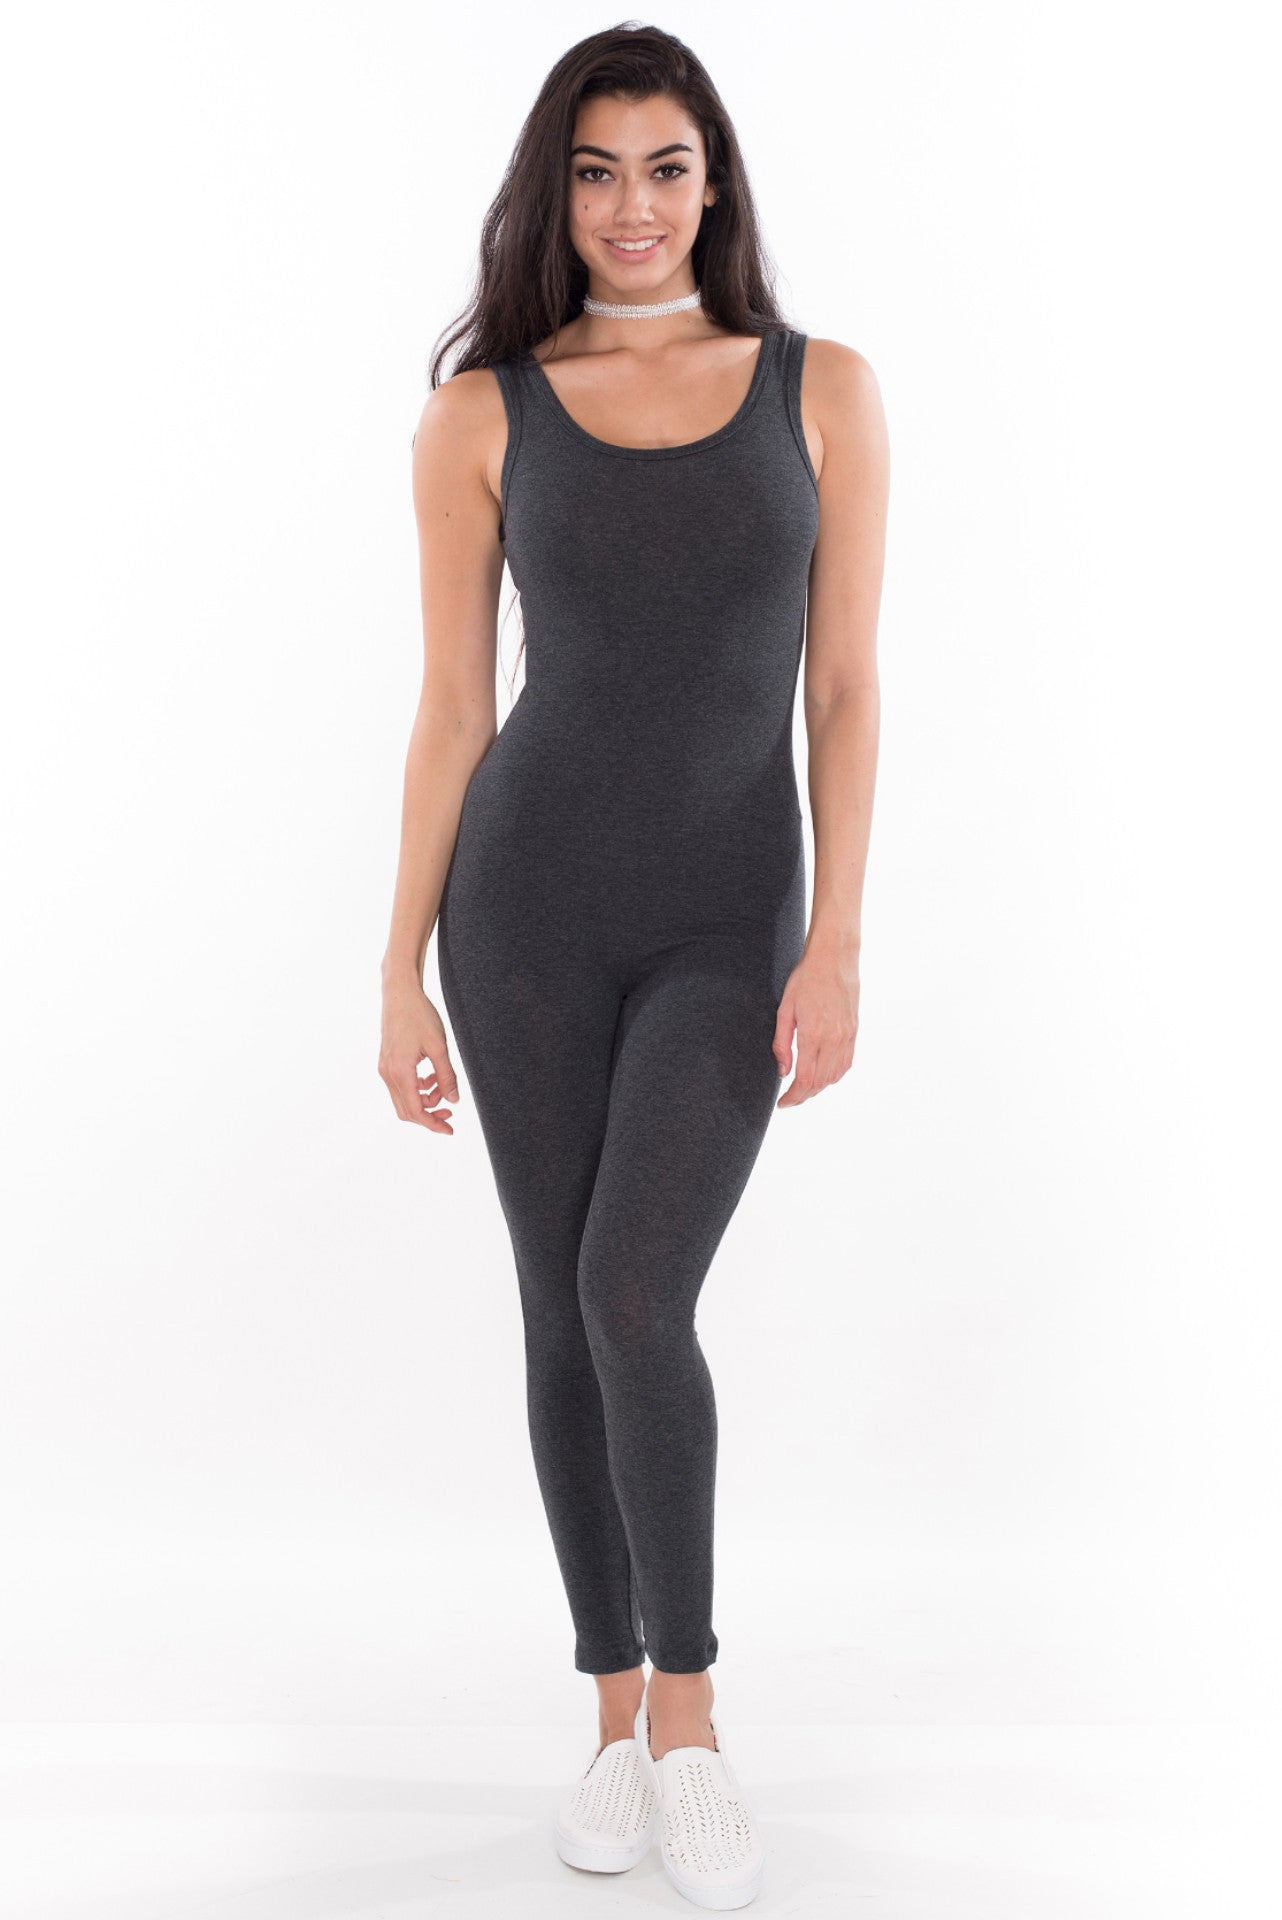 Kitty Catsuit - Charcoal